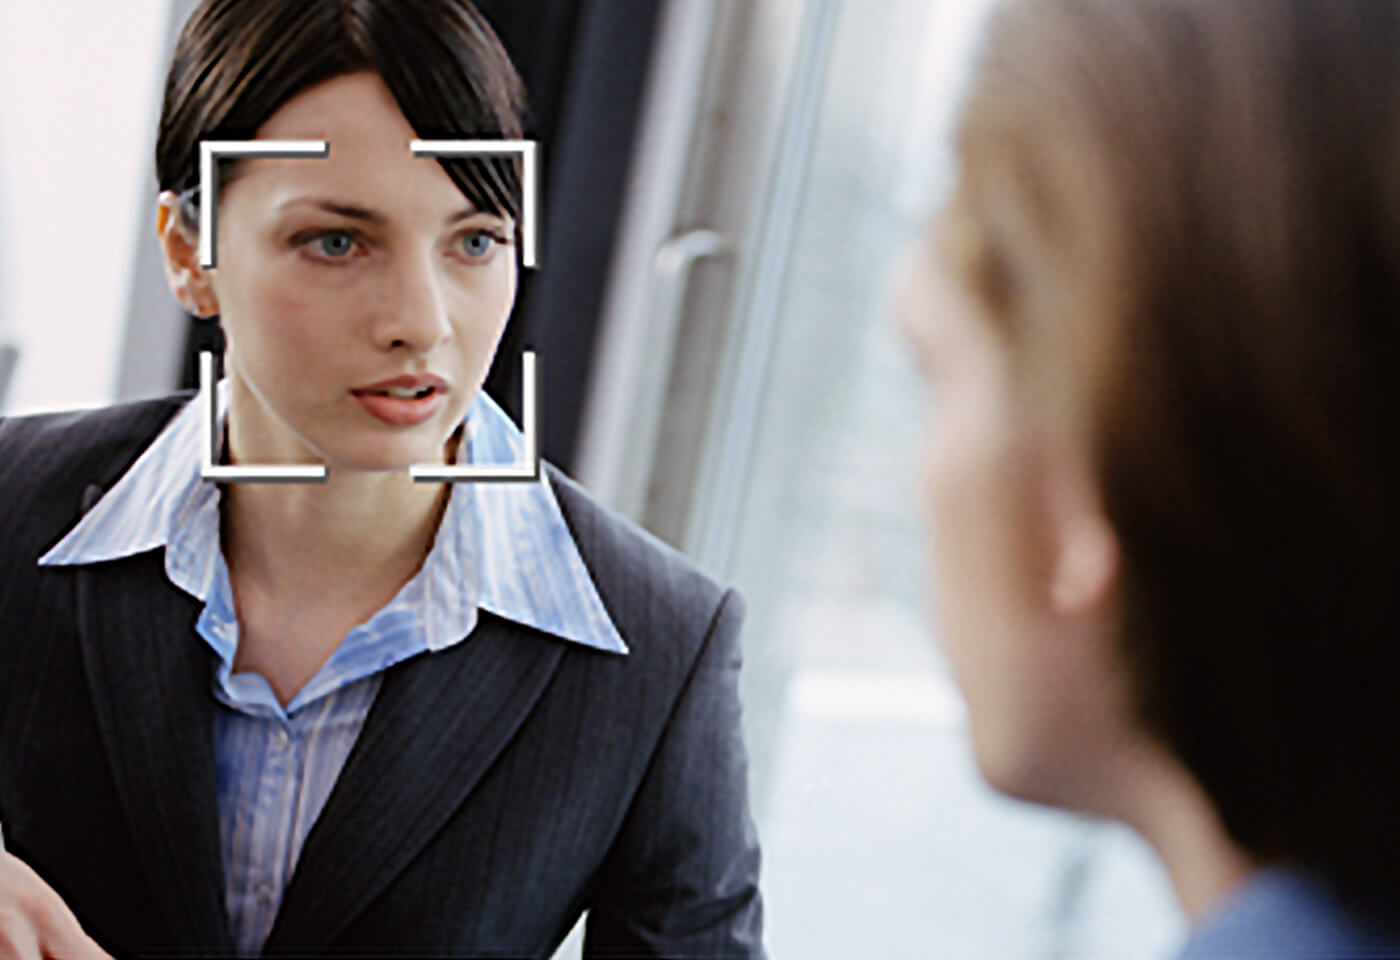 DAF face detection image